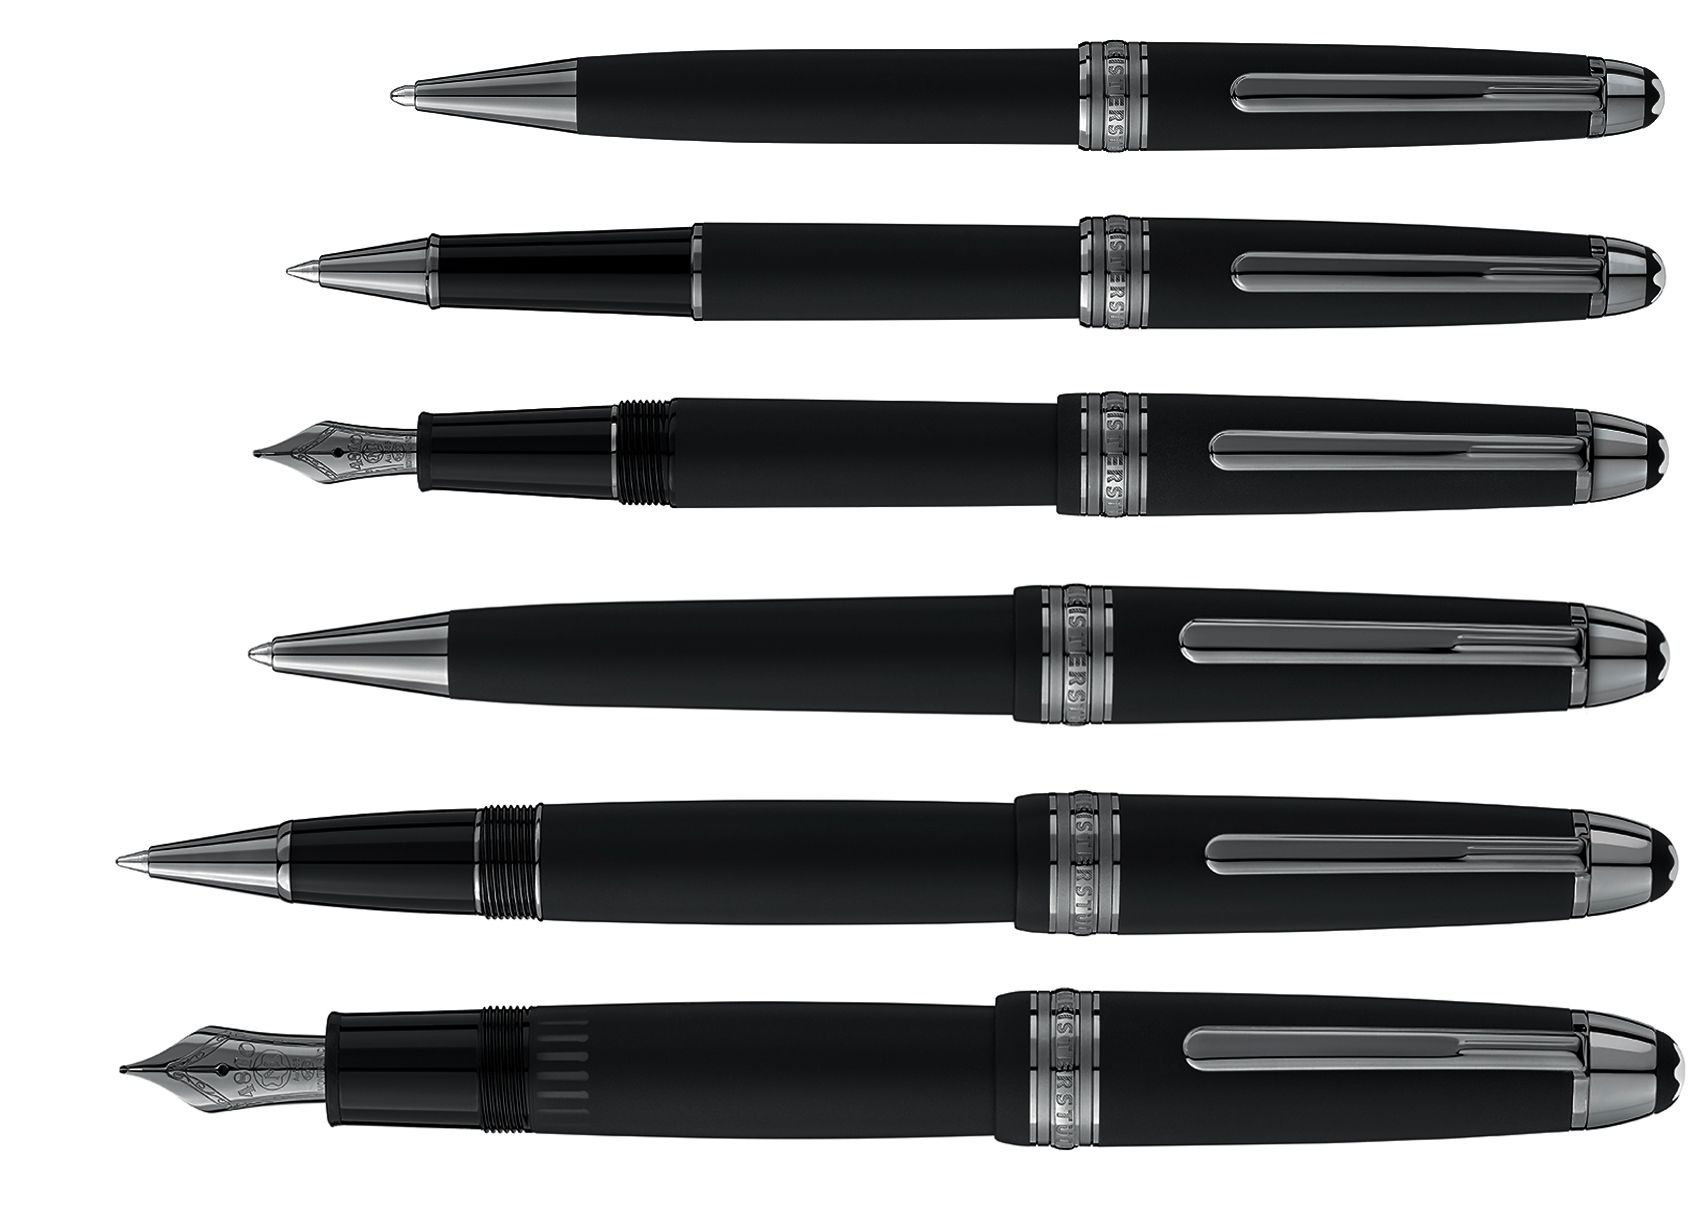 6f69ae5cc44 The new Montblanc Meisterstück Ultra Black Special Edition reveals a  completely…